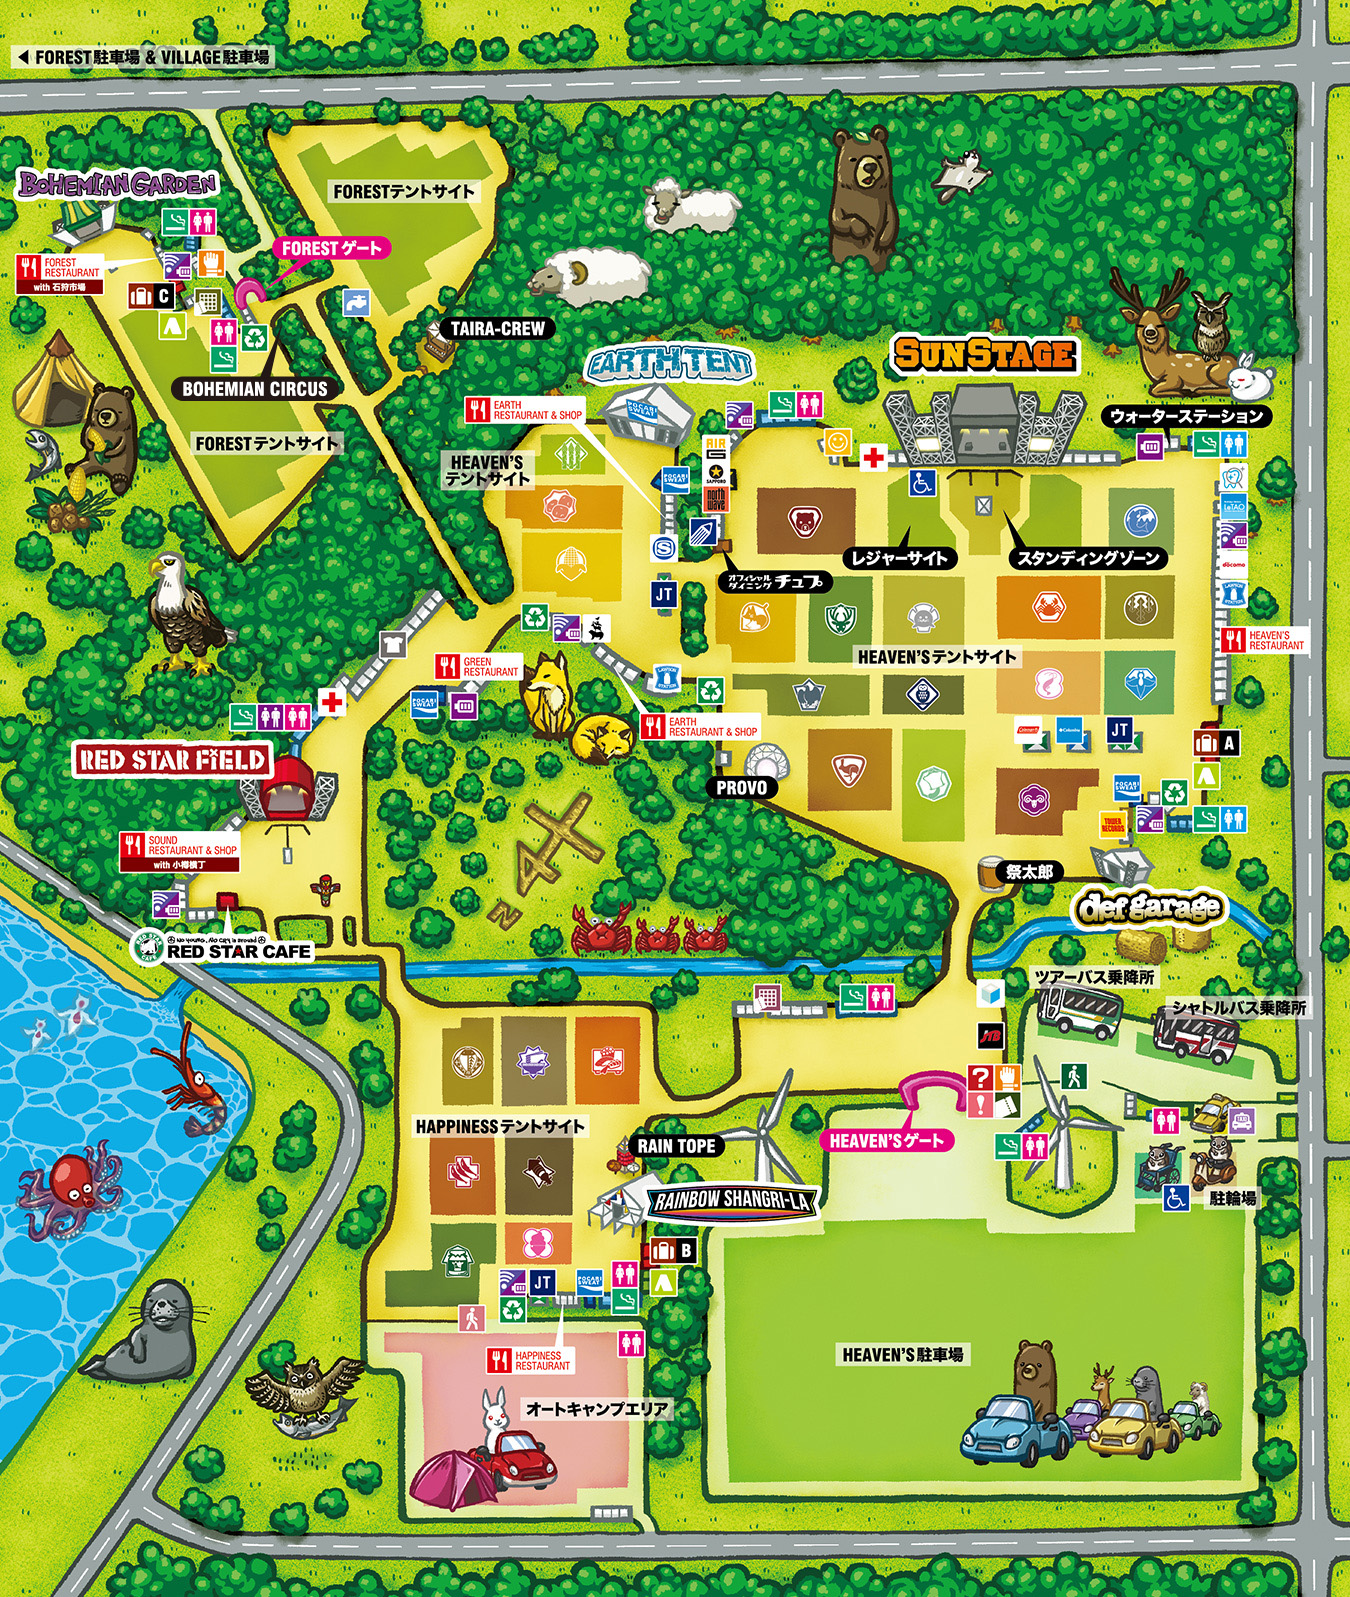 Site Map 2018: RISING SUN ROCK FESTIVAL 2018 In EZO